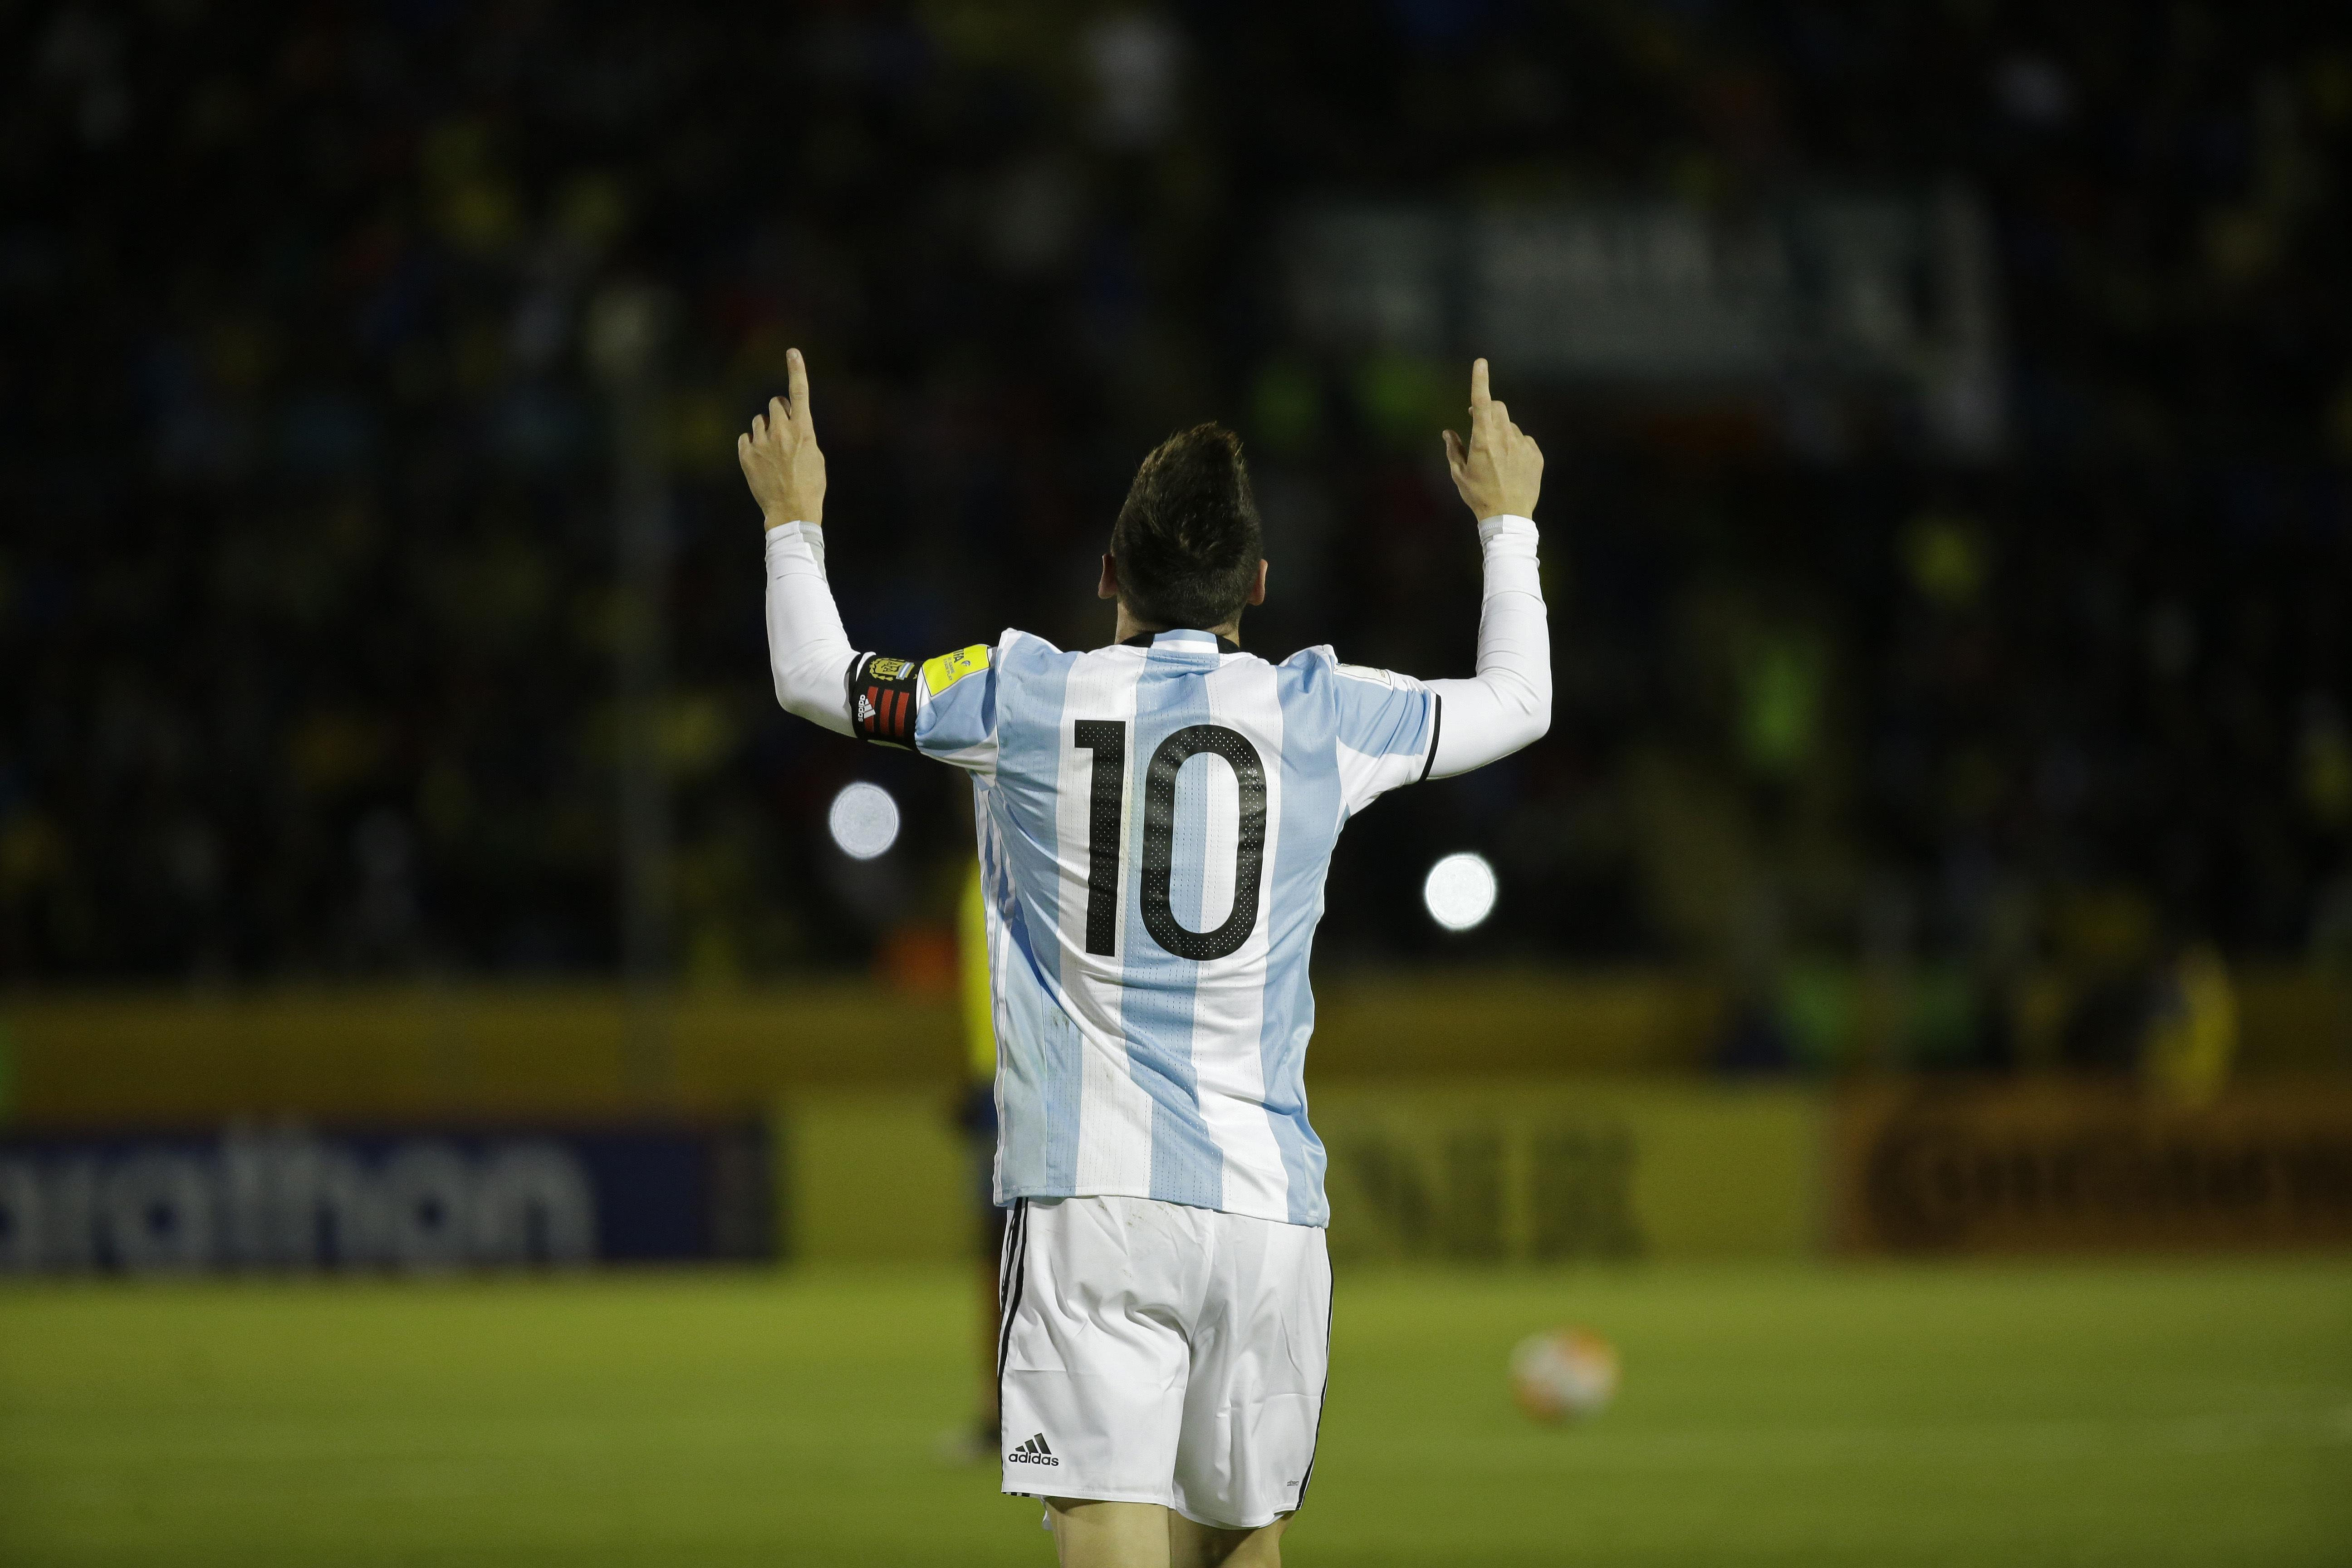 Argentina s Lionel Messi celebrates after scoring against Ecuador during  their 2018 World Cup qualifying soccer match a9a4b351e